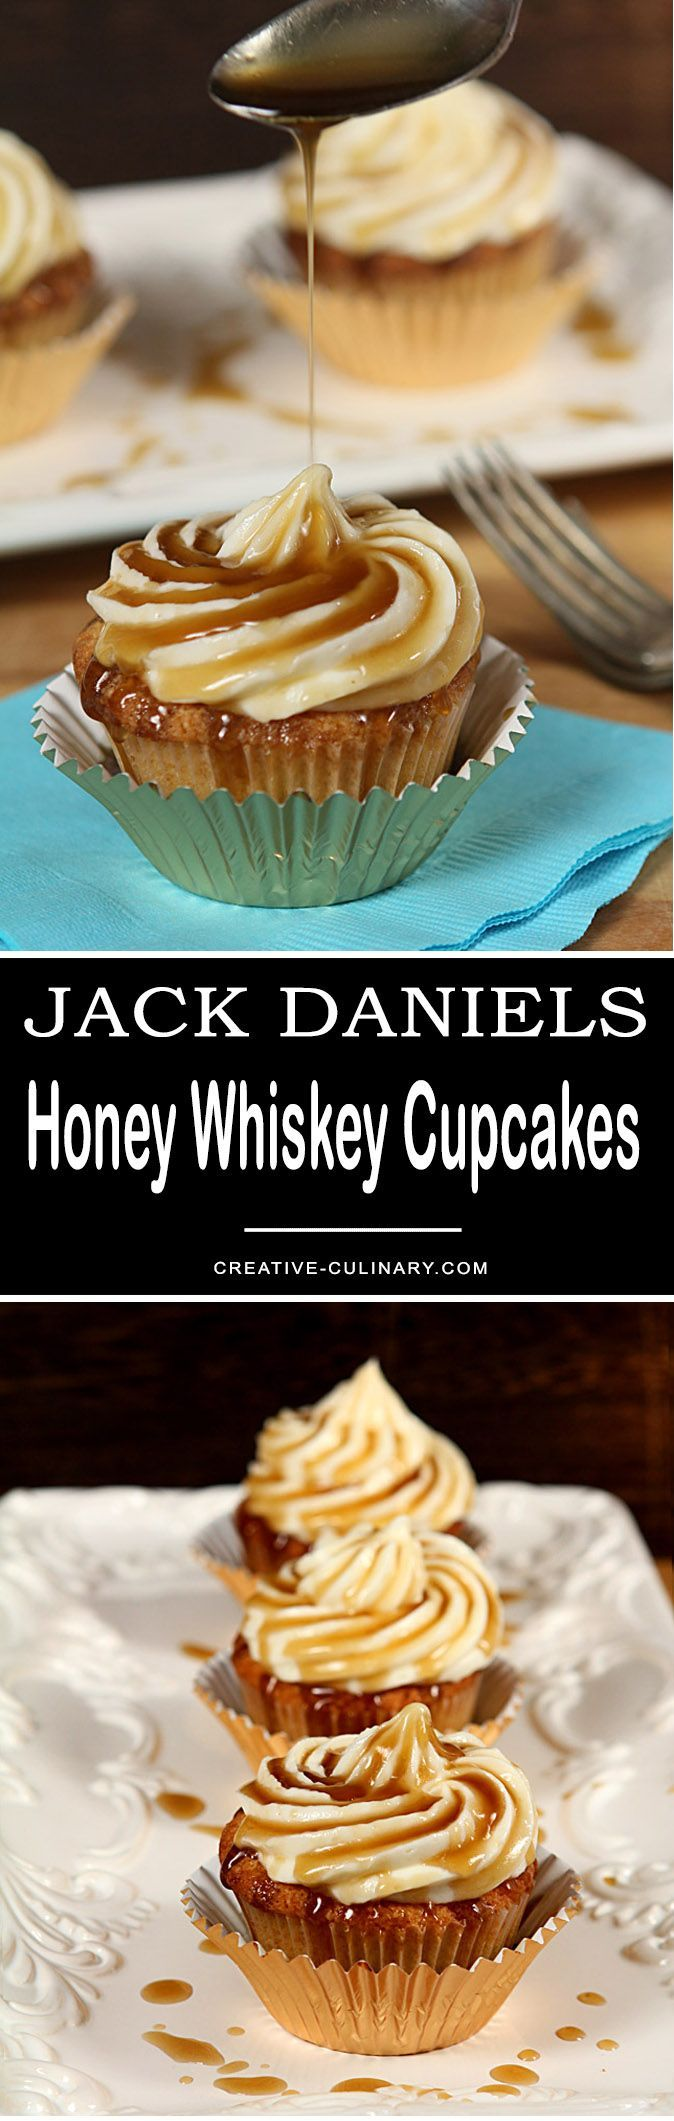 These Jack Daniels Honey Whiskey Cupcakes with a Boozy Drizzle are completely decadent and the most popular recipe on my blog; you must try them! via @creativculinary